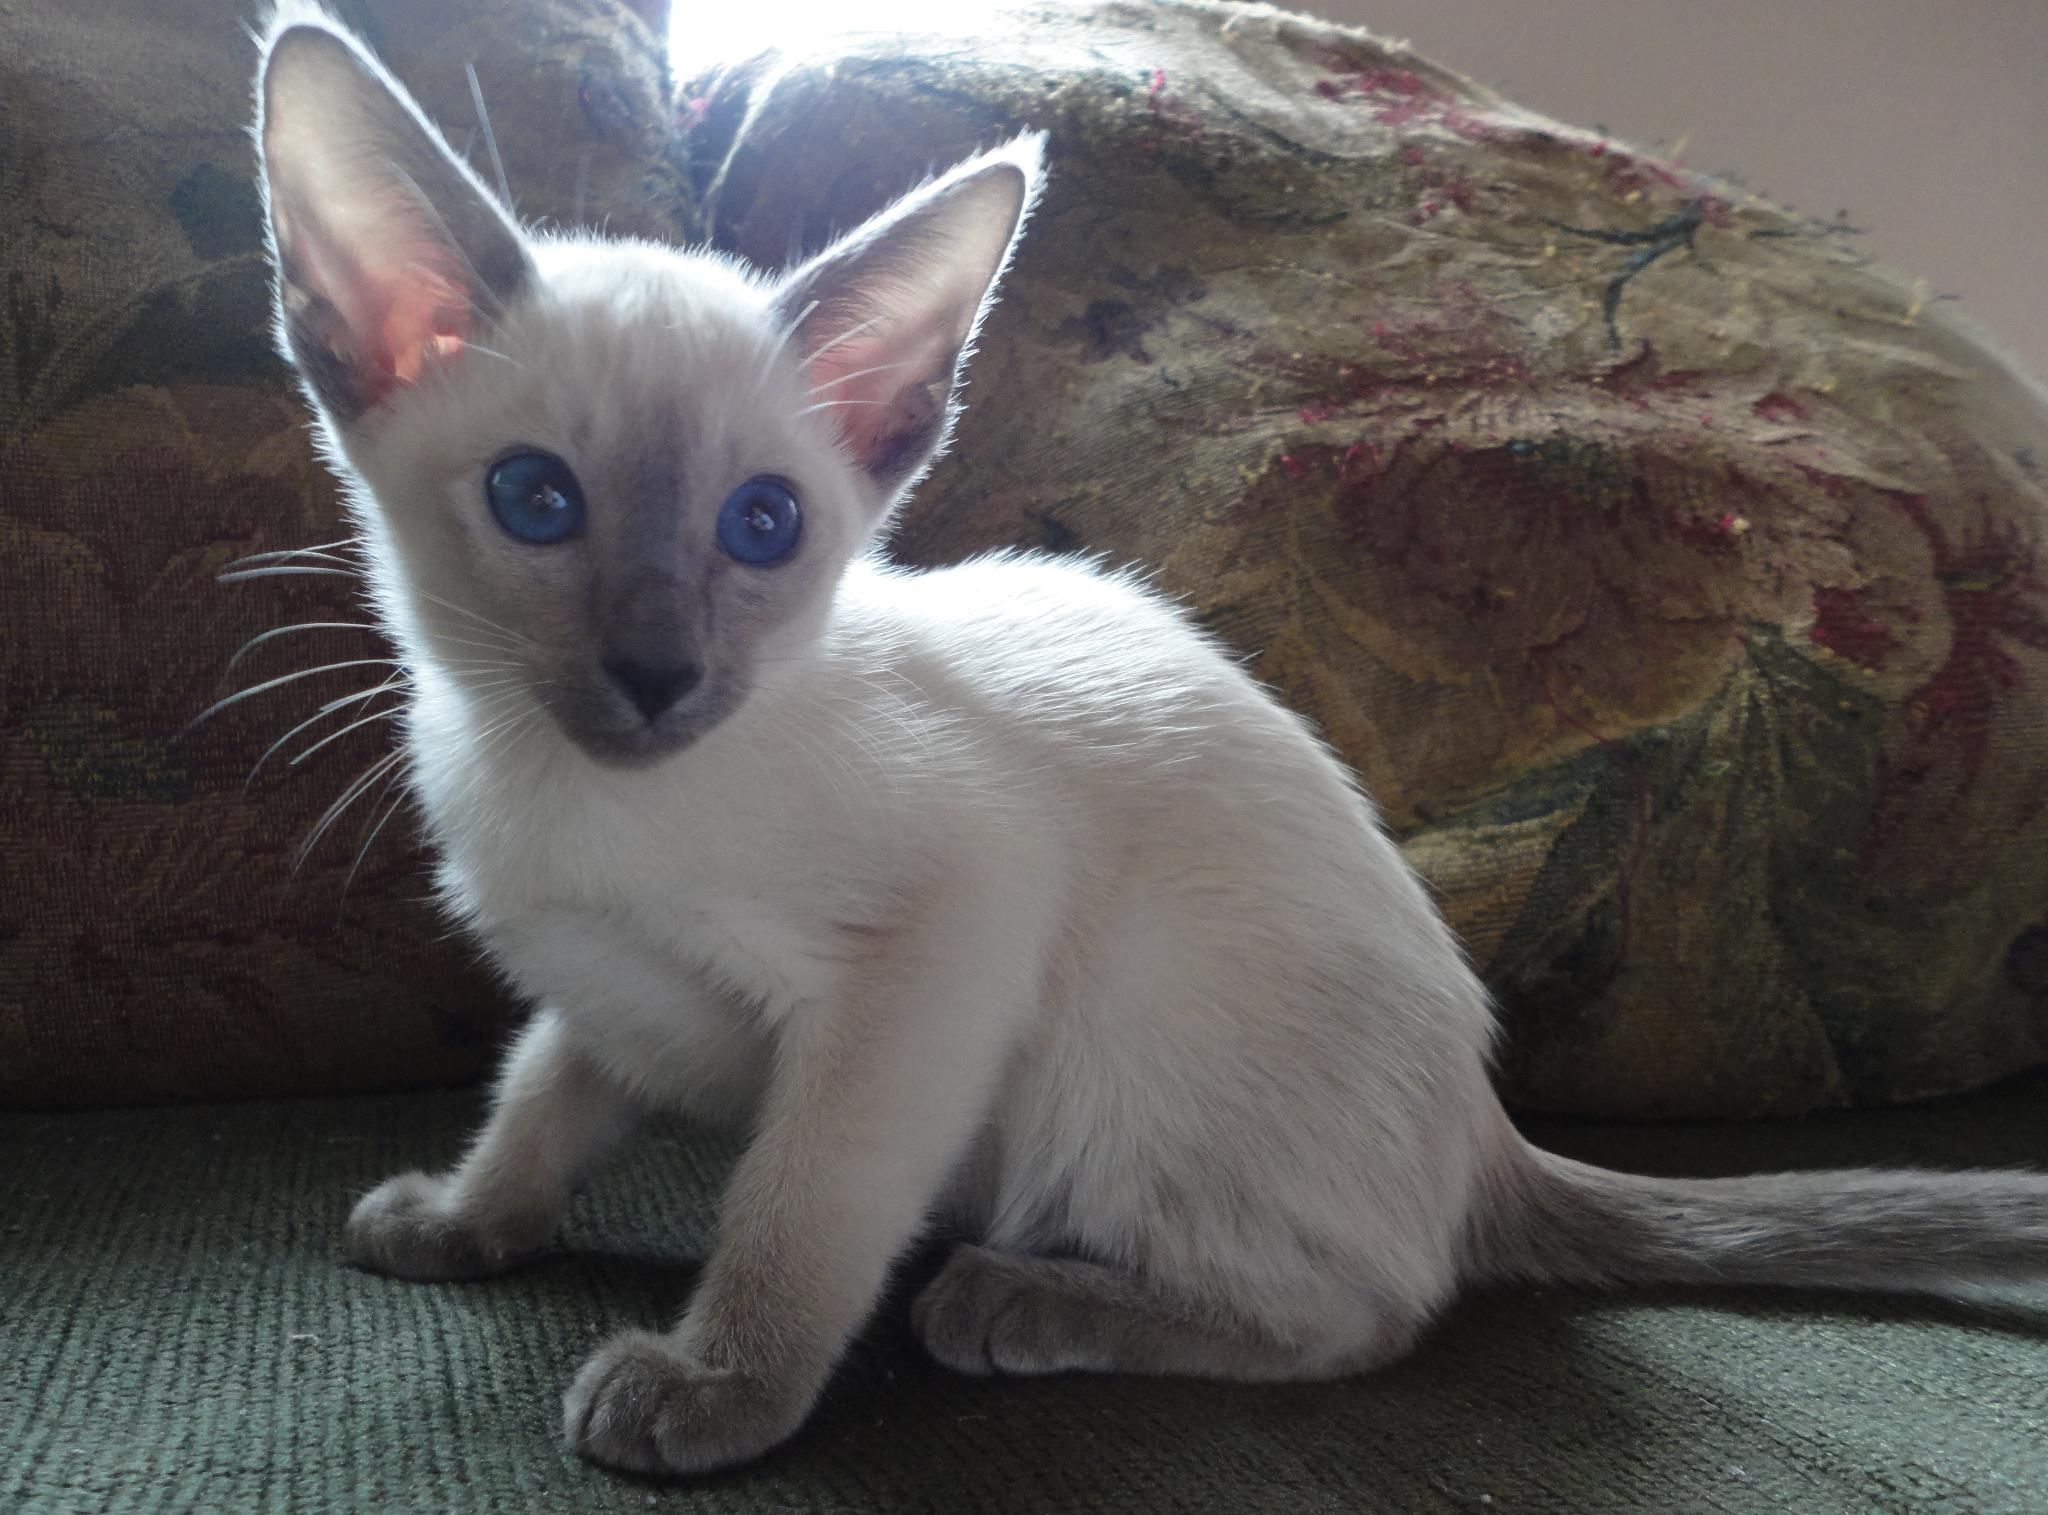 true siamese make me smile. another creature on my